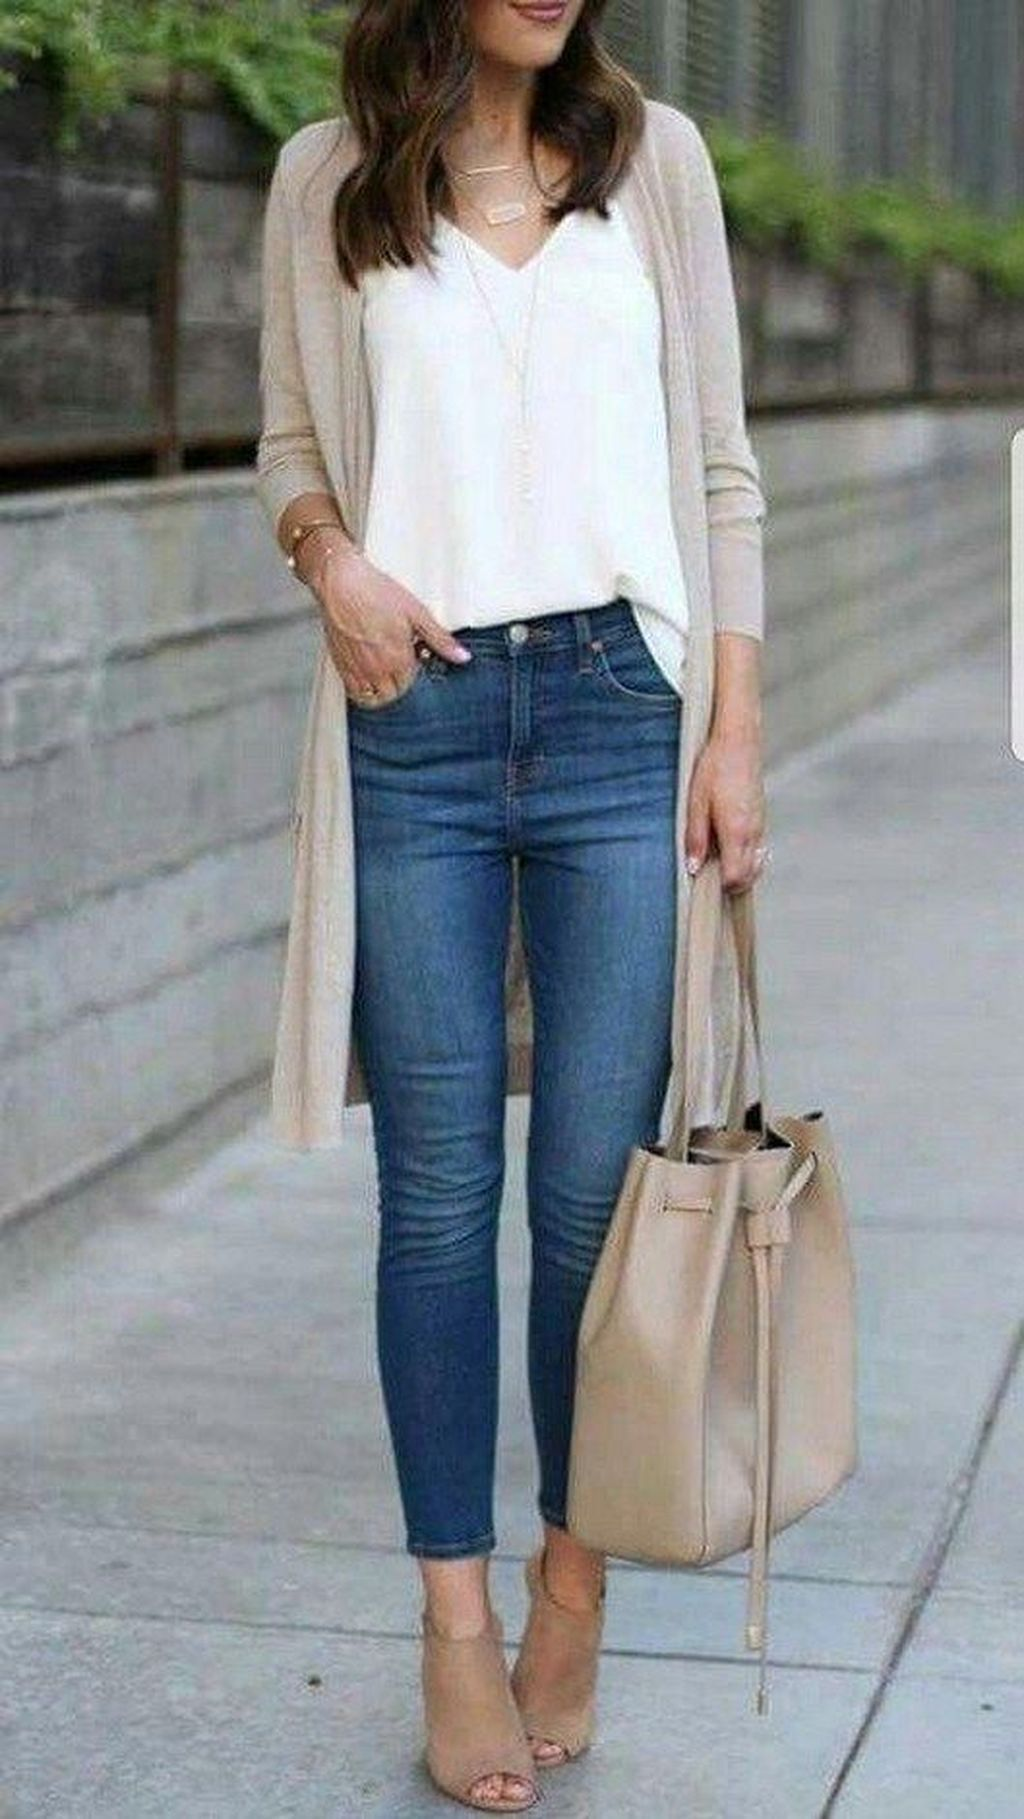 Inspiring Women Spring Jeans Outfit Ideas For Work 06 With Images